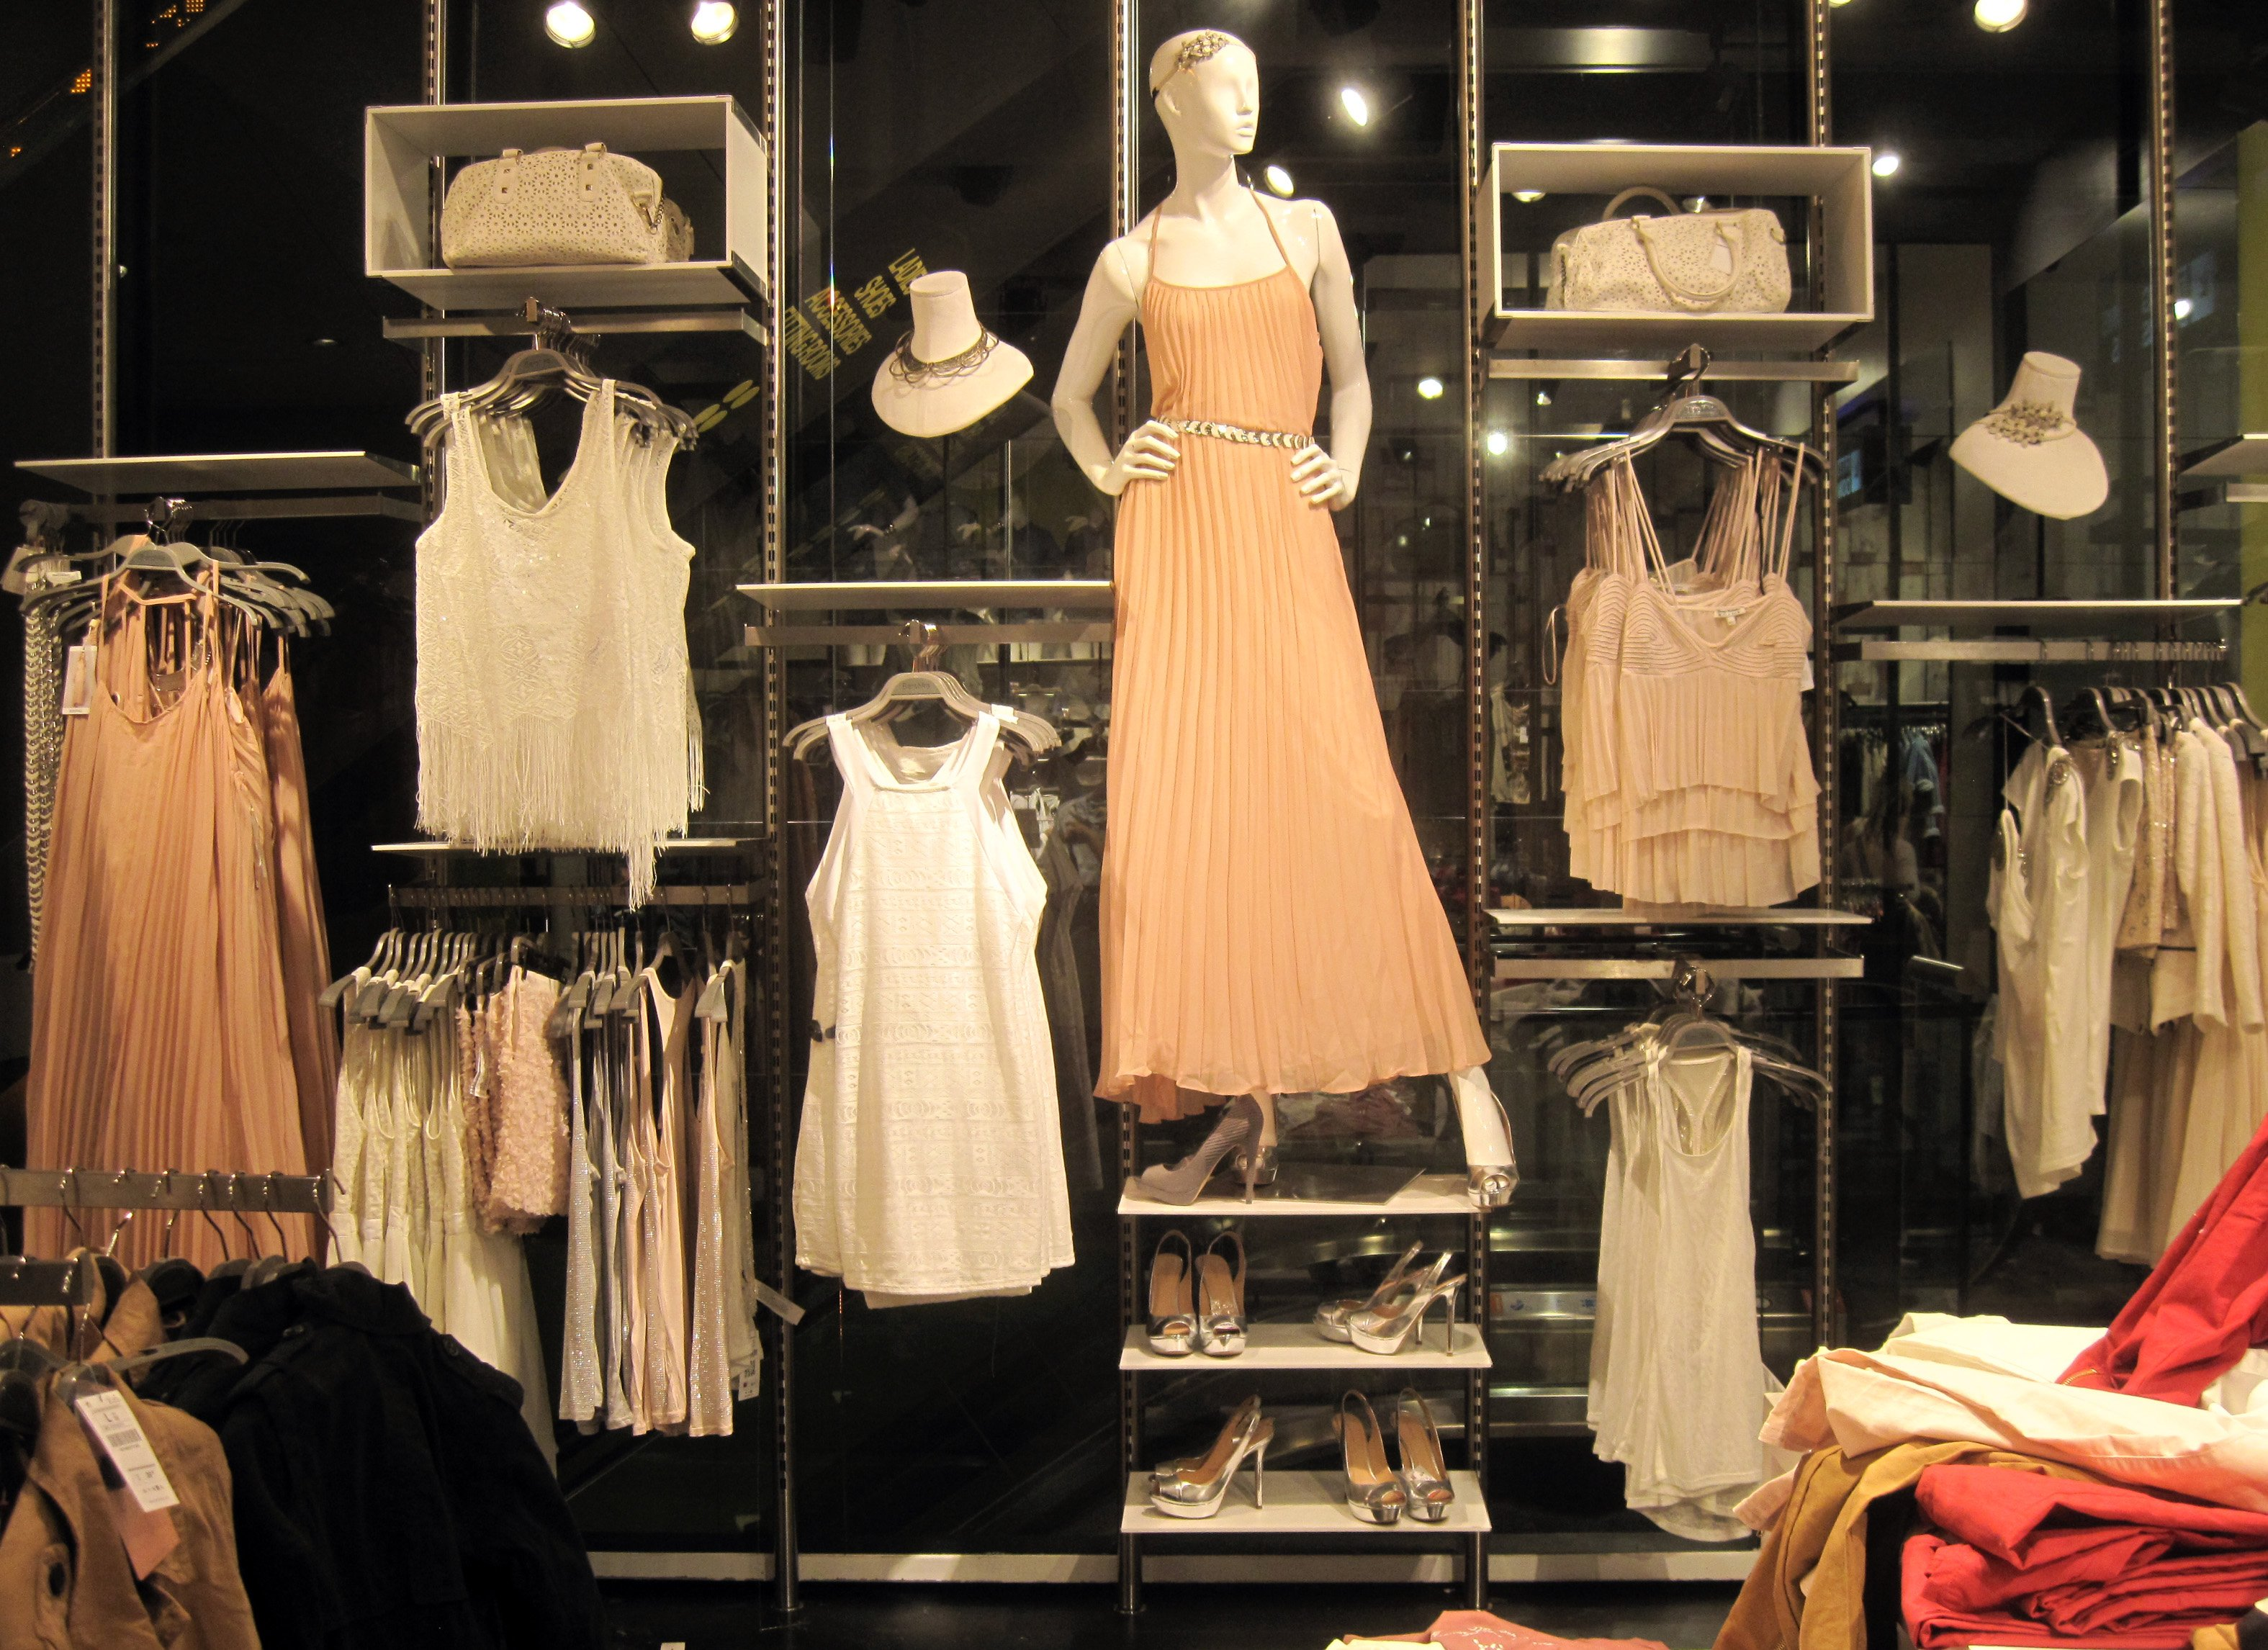 Galleries ispira blog for Boutique wall displays